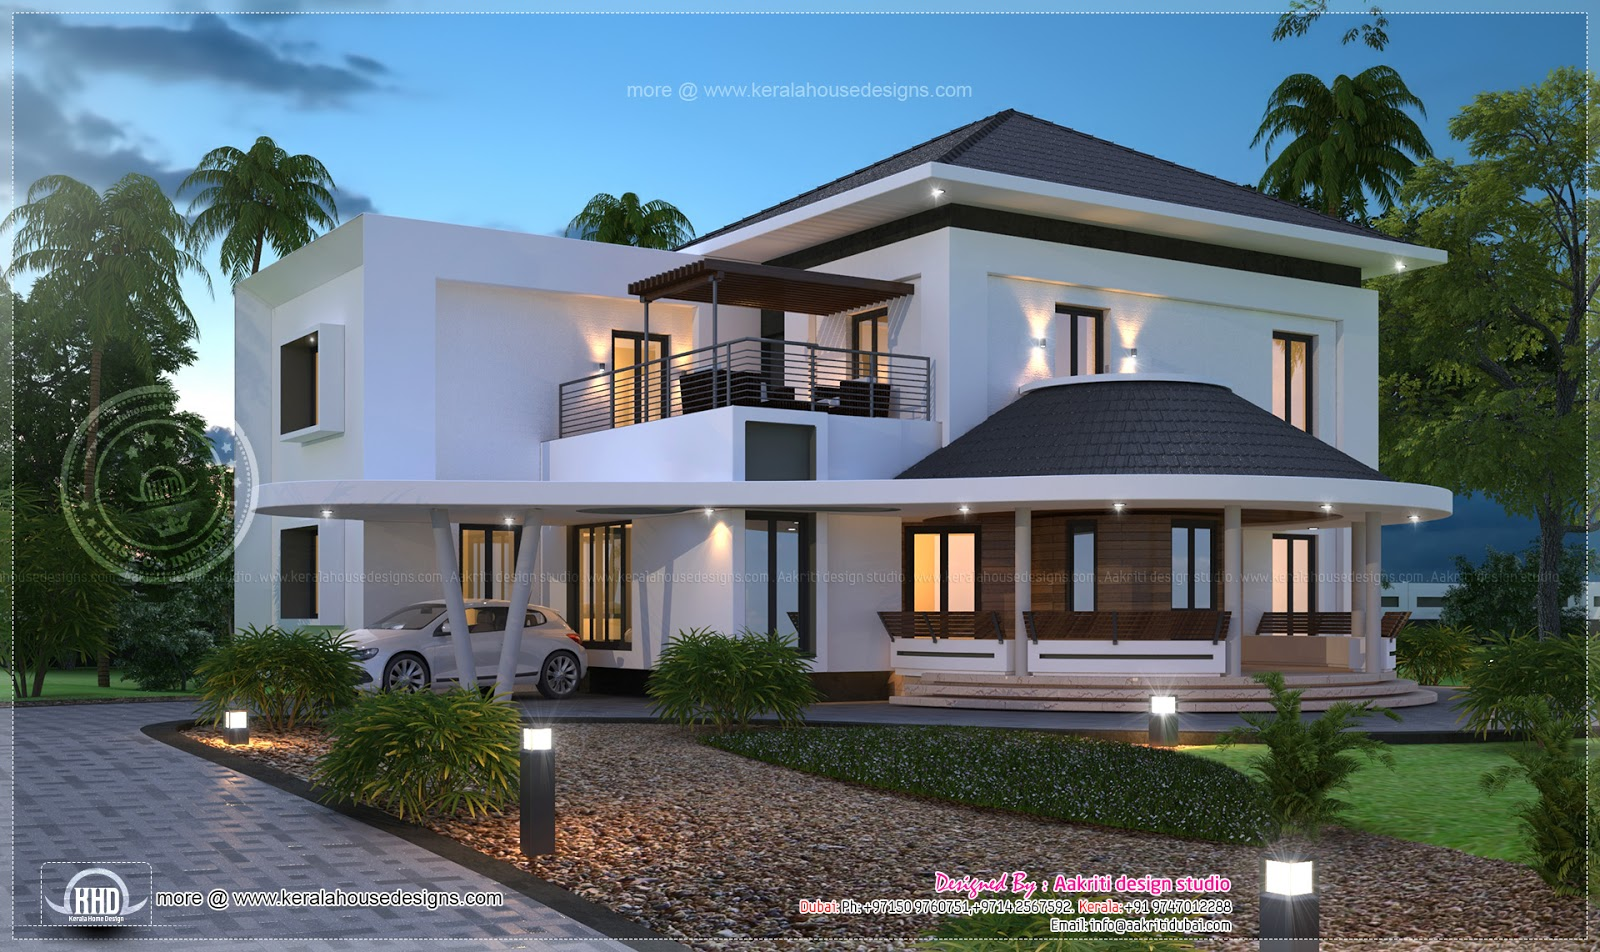 Beautiful 3200 sq ft modern villa exterior home kerala plans Free indian home plans and designs